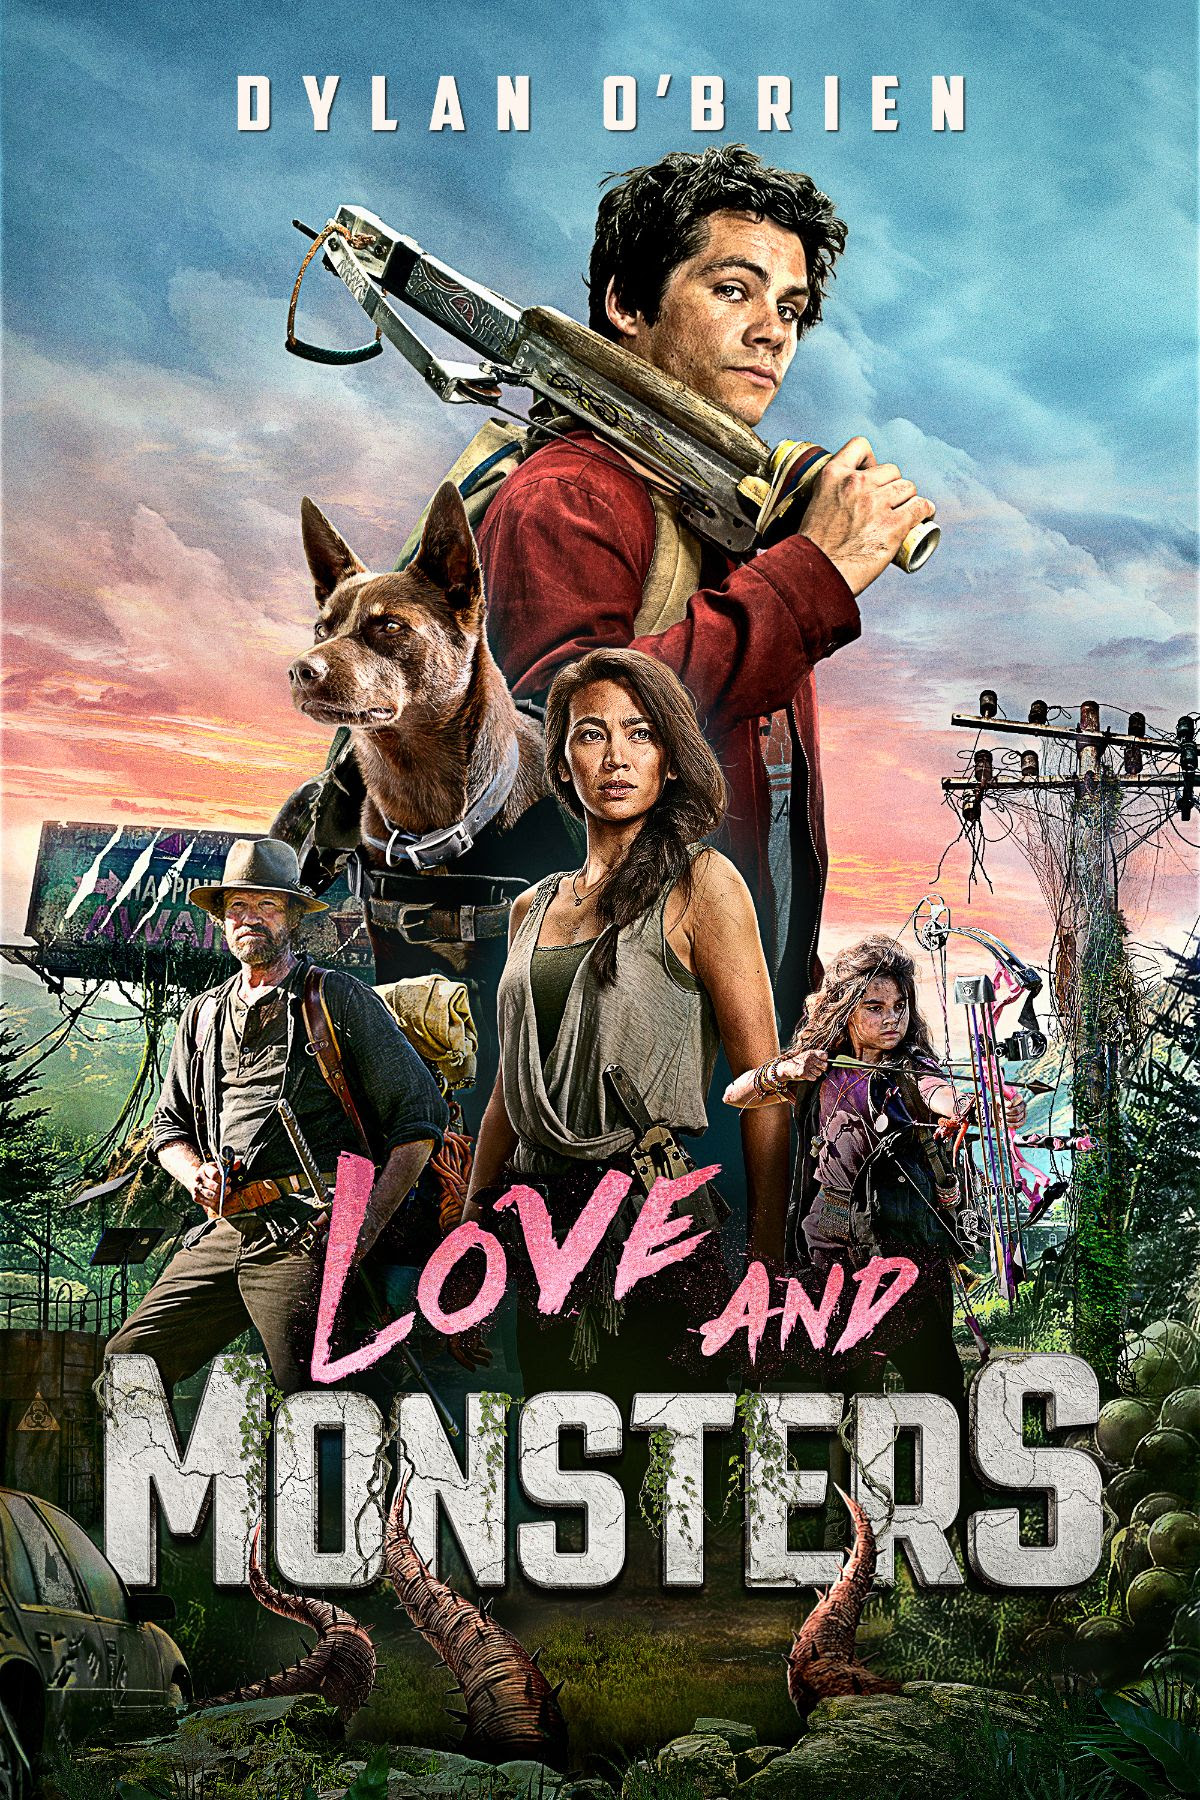 Happy New Year from Love and Monsters